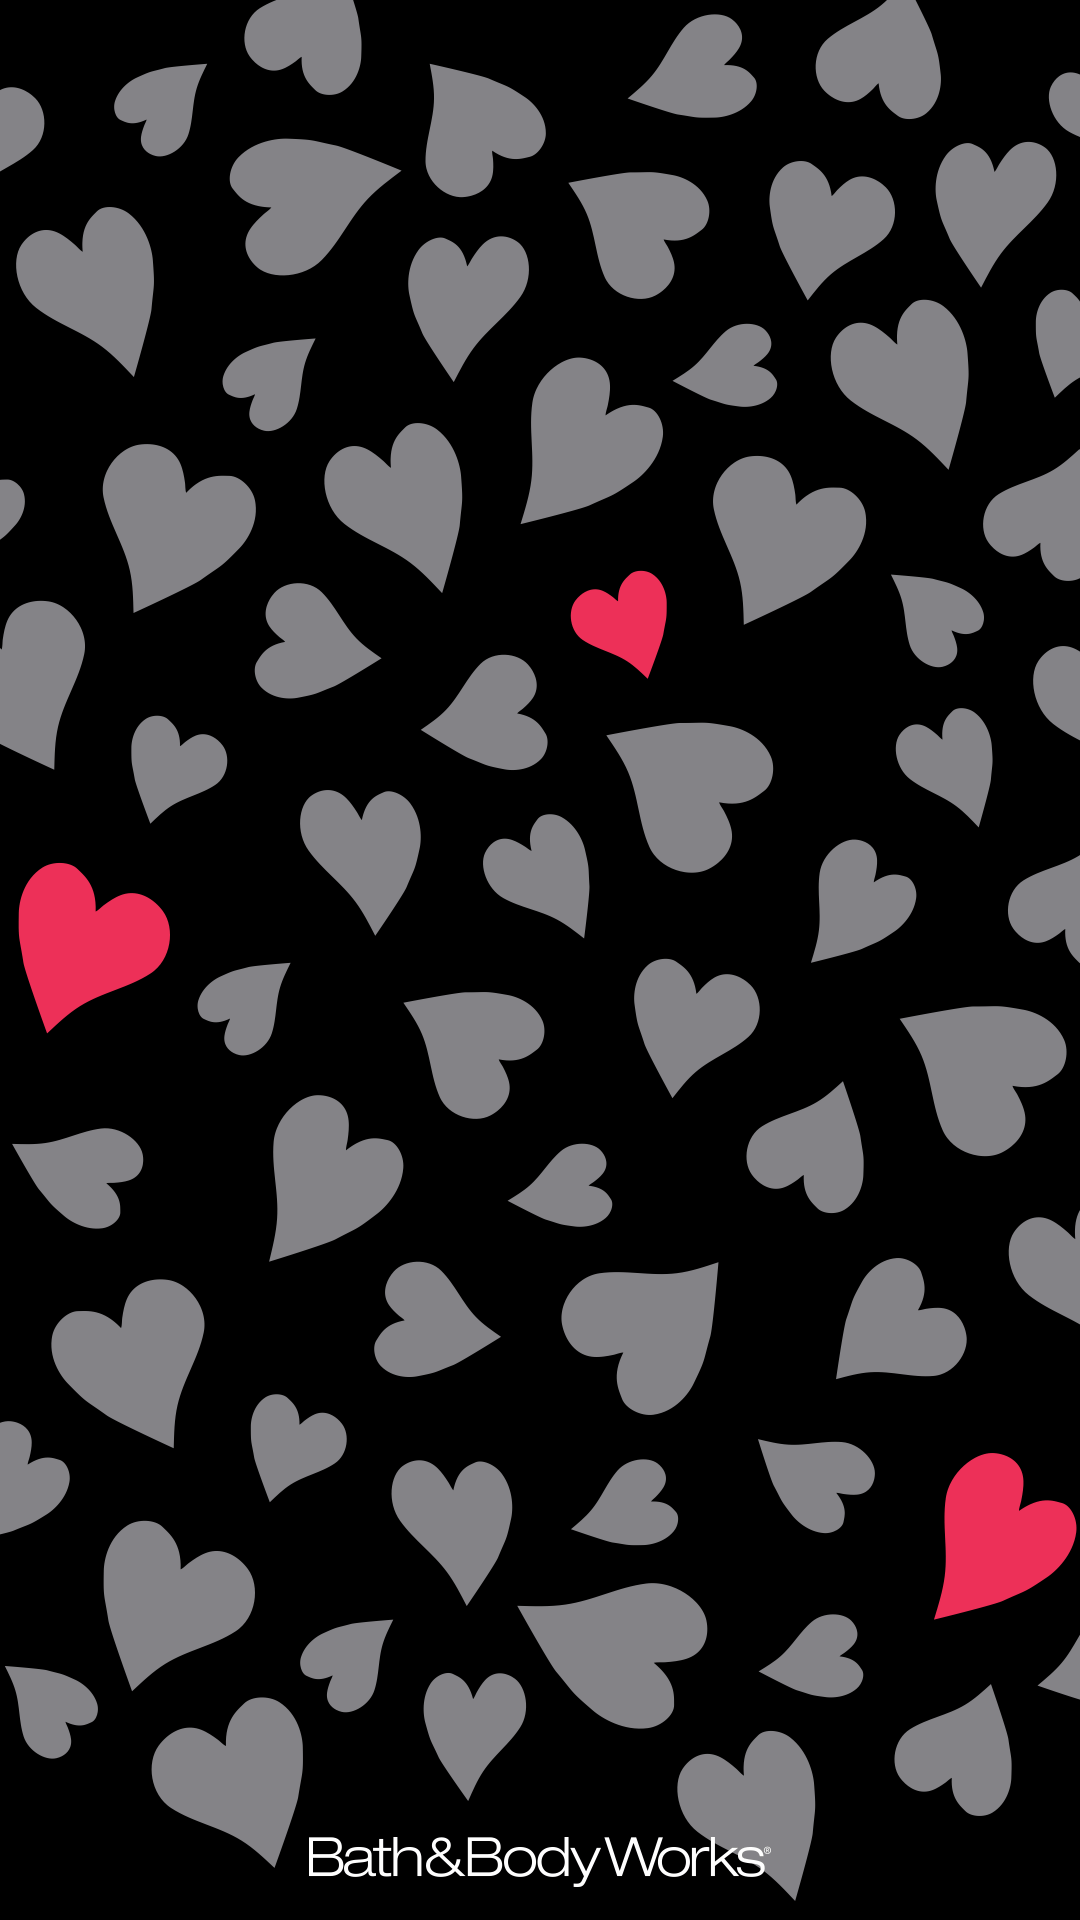 Heart Iphone Wallpapers Top Free Heart Iphone Backgrounds Wallpaperaccess